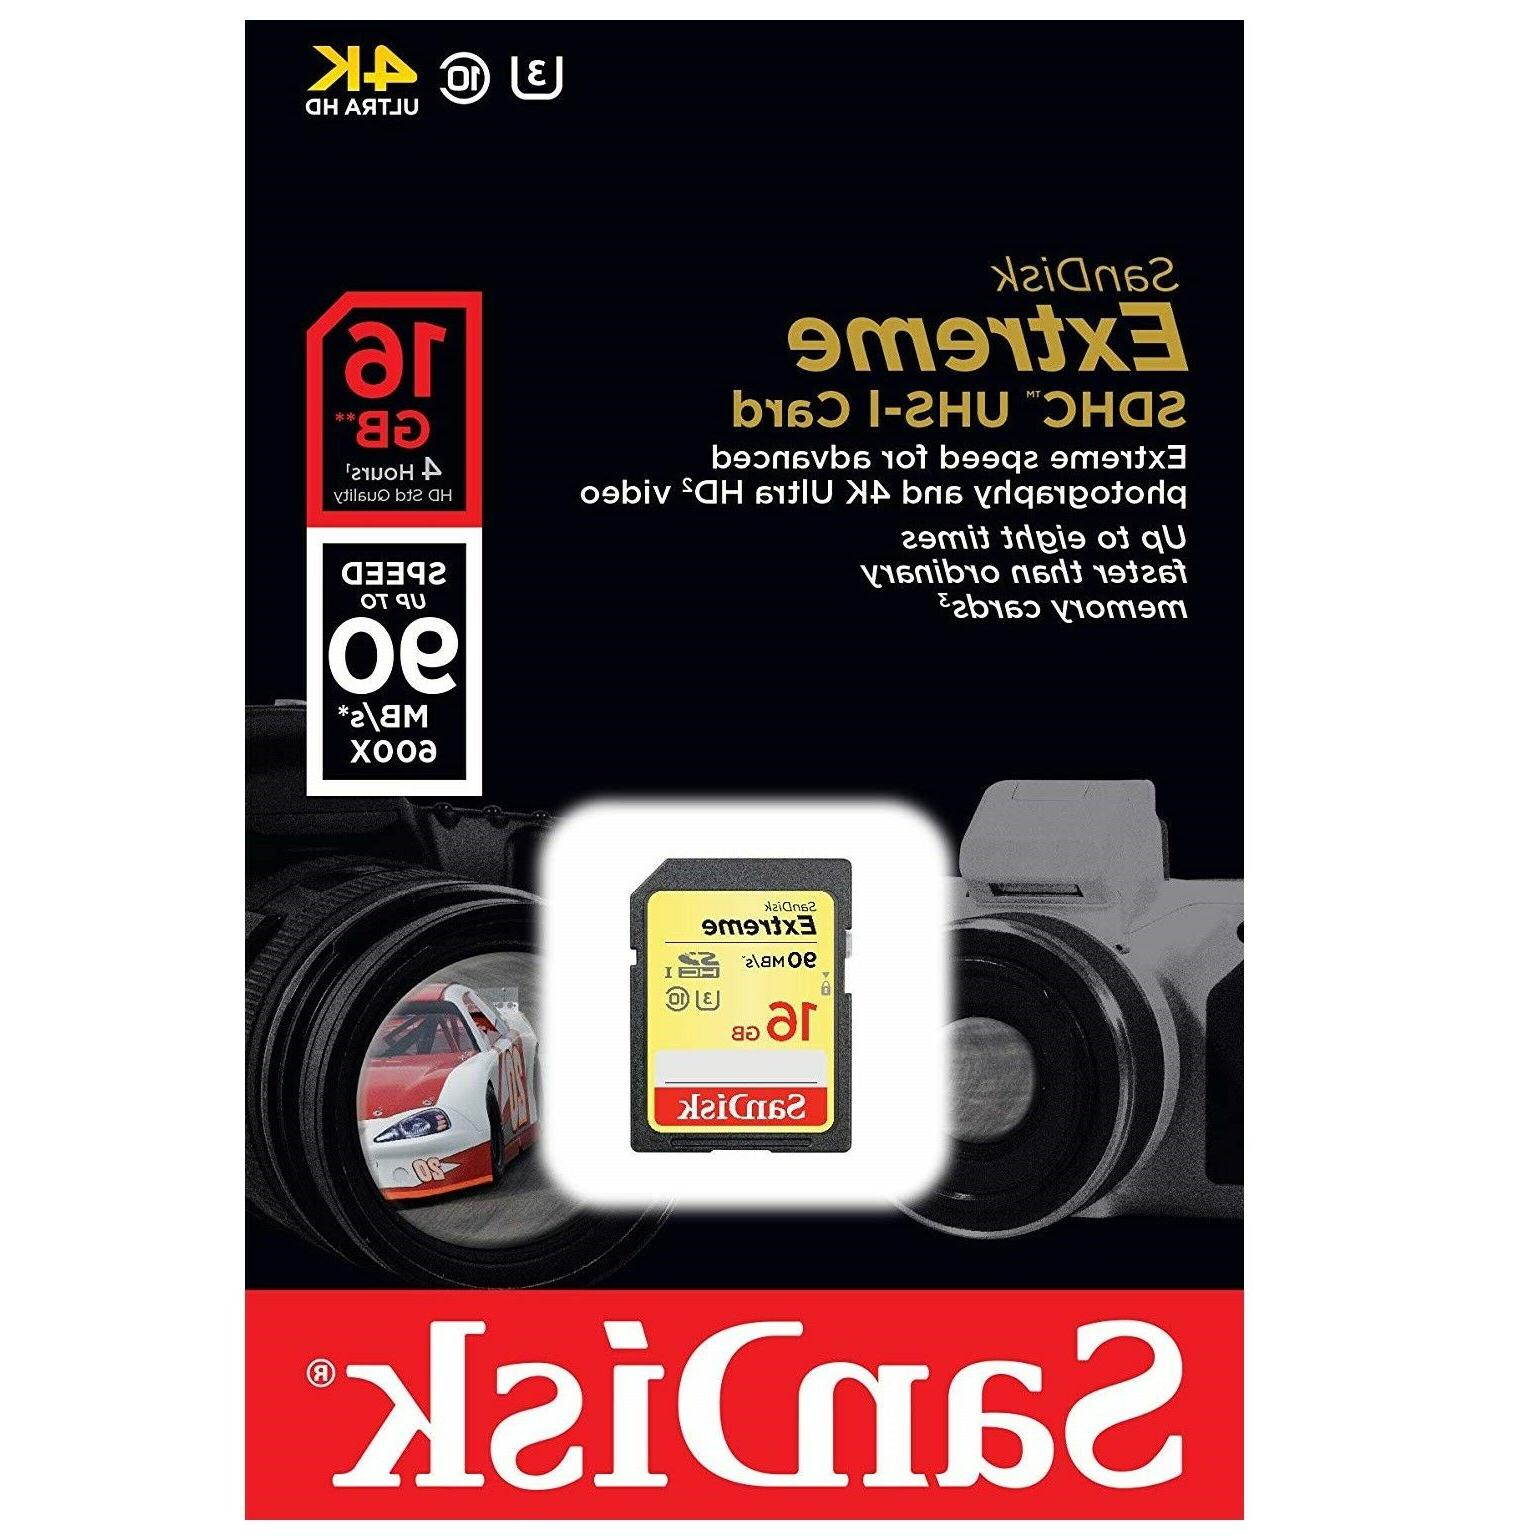 Sandisk Extreme Memory Cards 16GB 32GB 64GB for Cannon, Kodak